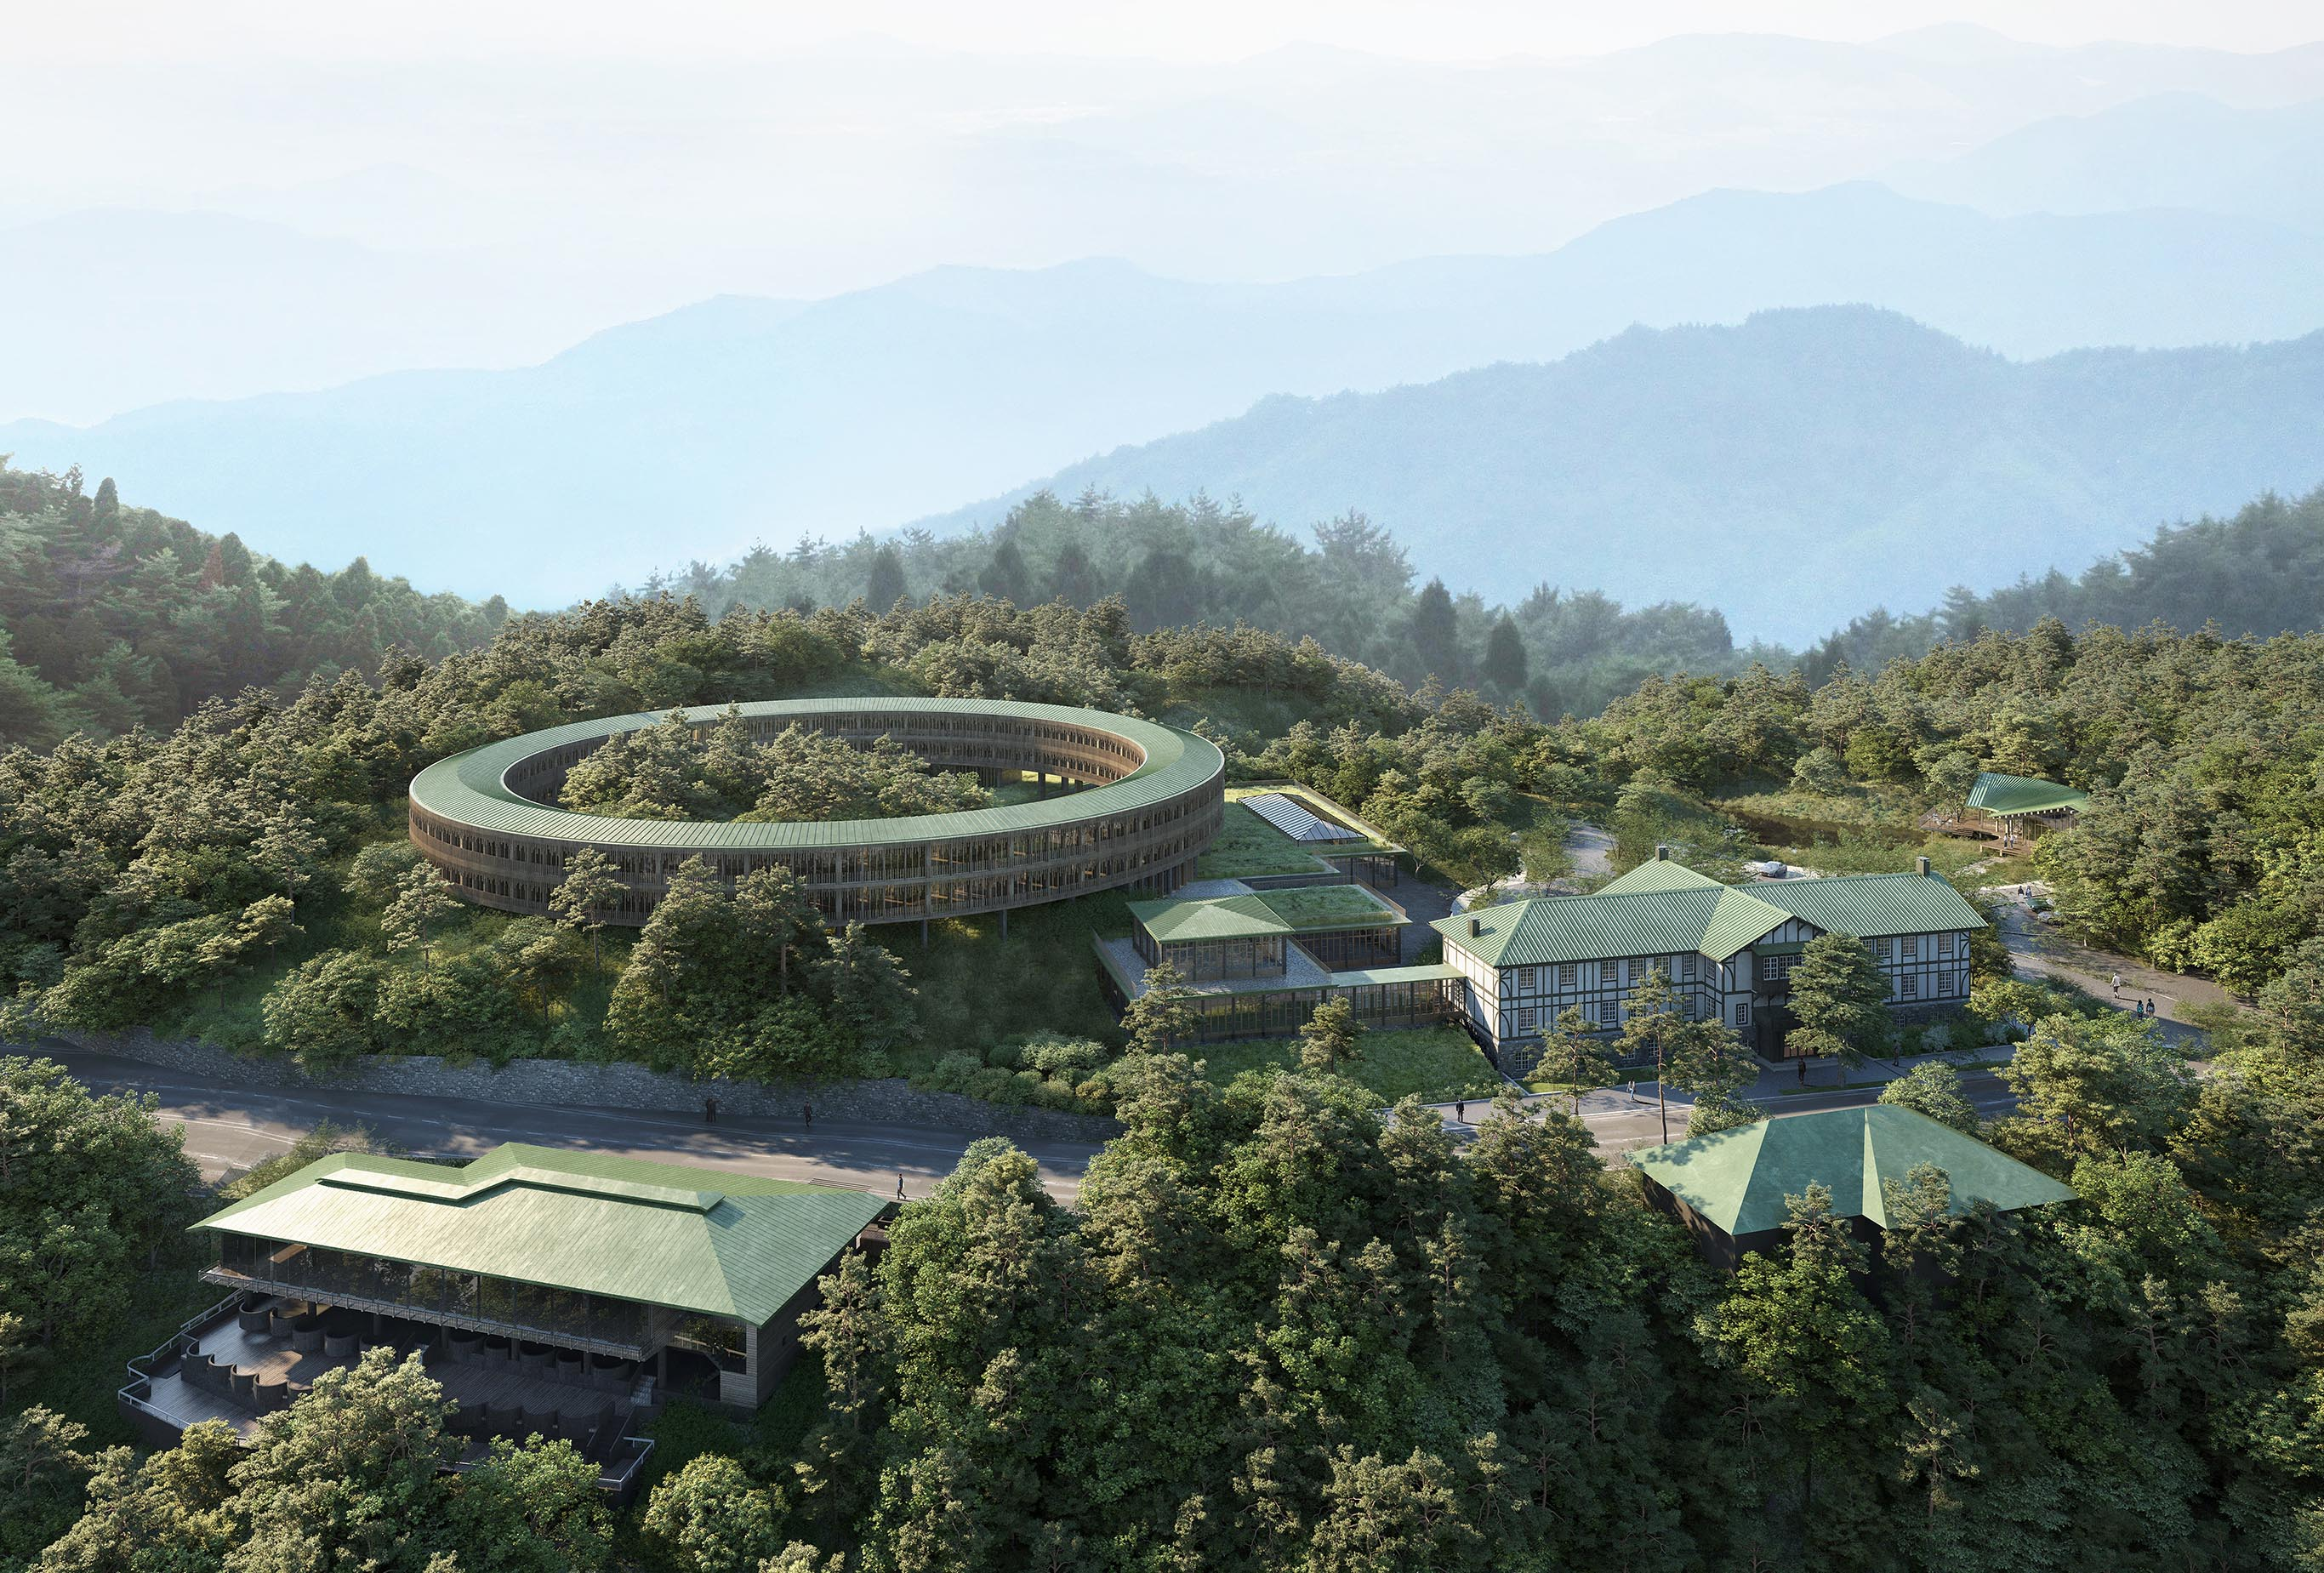 The Rokkosan Silence Resort is scheduled to complete in 2025. In July of 2019, the original building (former Rokkosan Hotel) situated on the back right of the image have reopened.  ©️Rokkosan silence resort